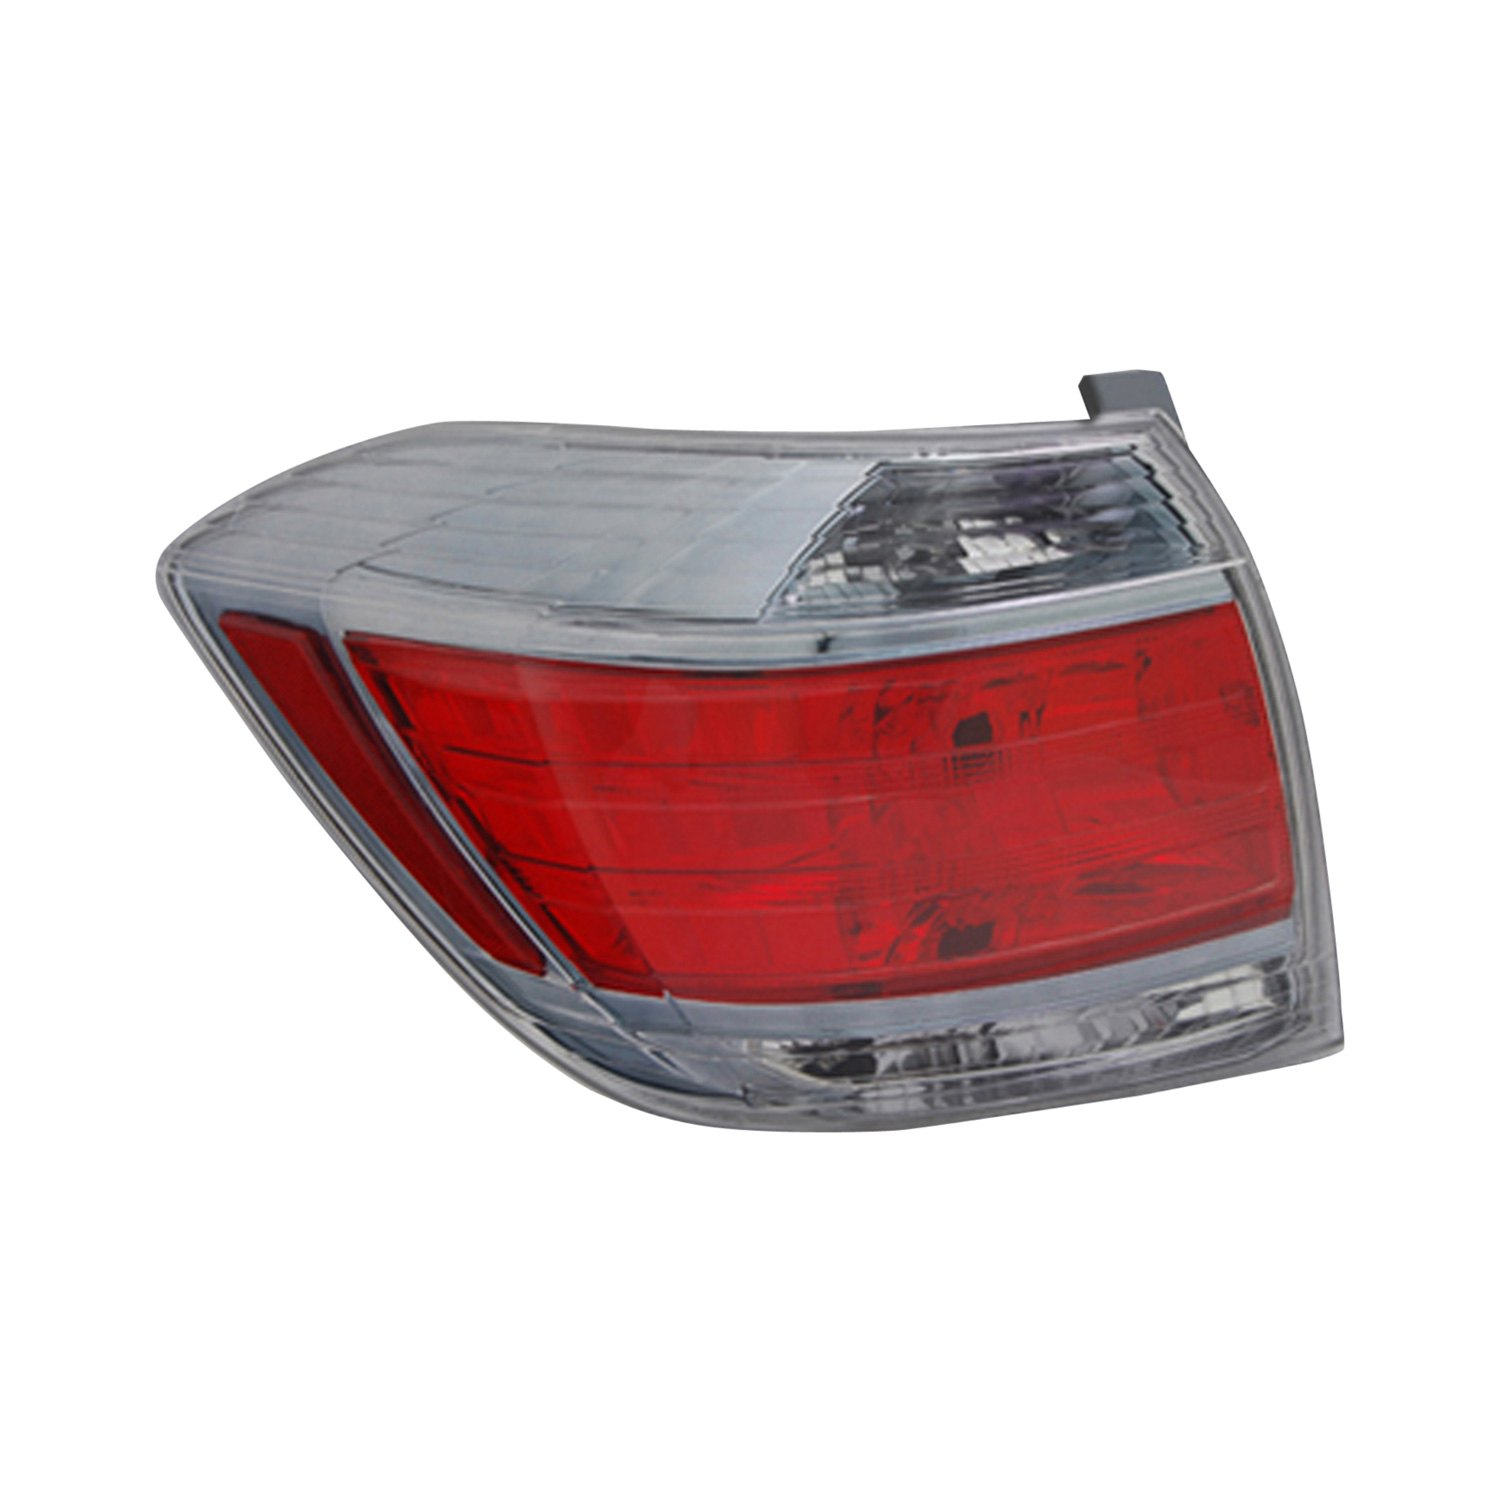 Tail Light Lens Replacement : Replace toyota highlander hybrid limited